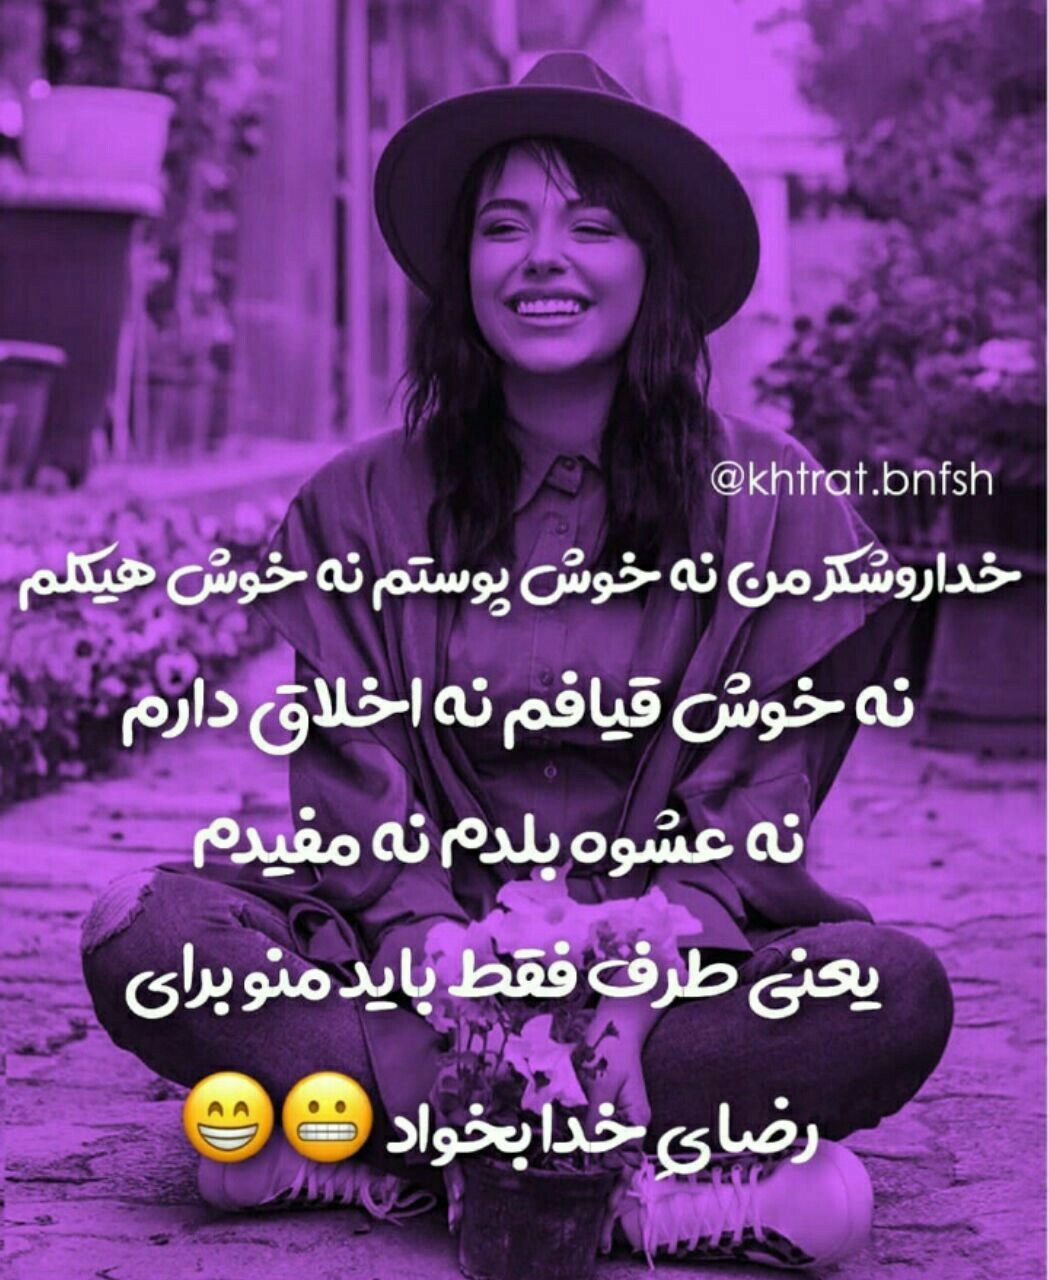 Pin By Sarina On خودم In 2021 Funny Words Funny Education Quotes Birthday Quotes For Best Friend